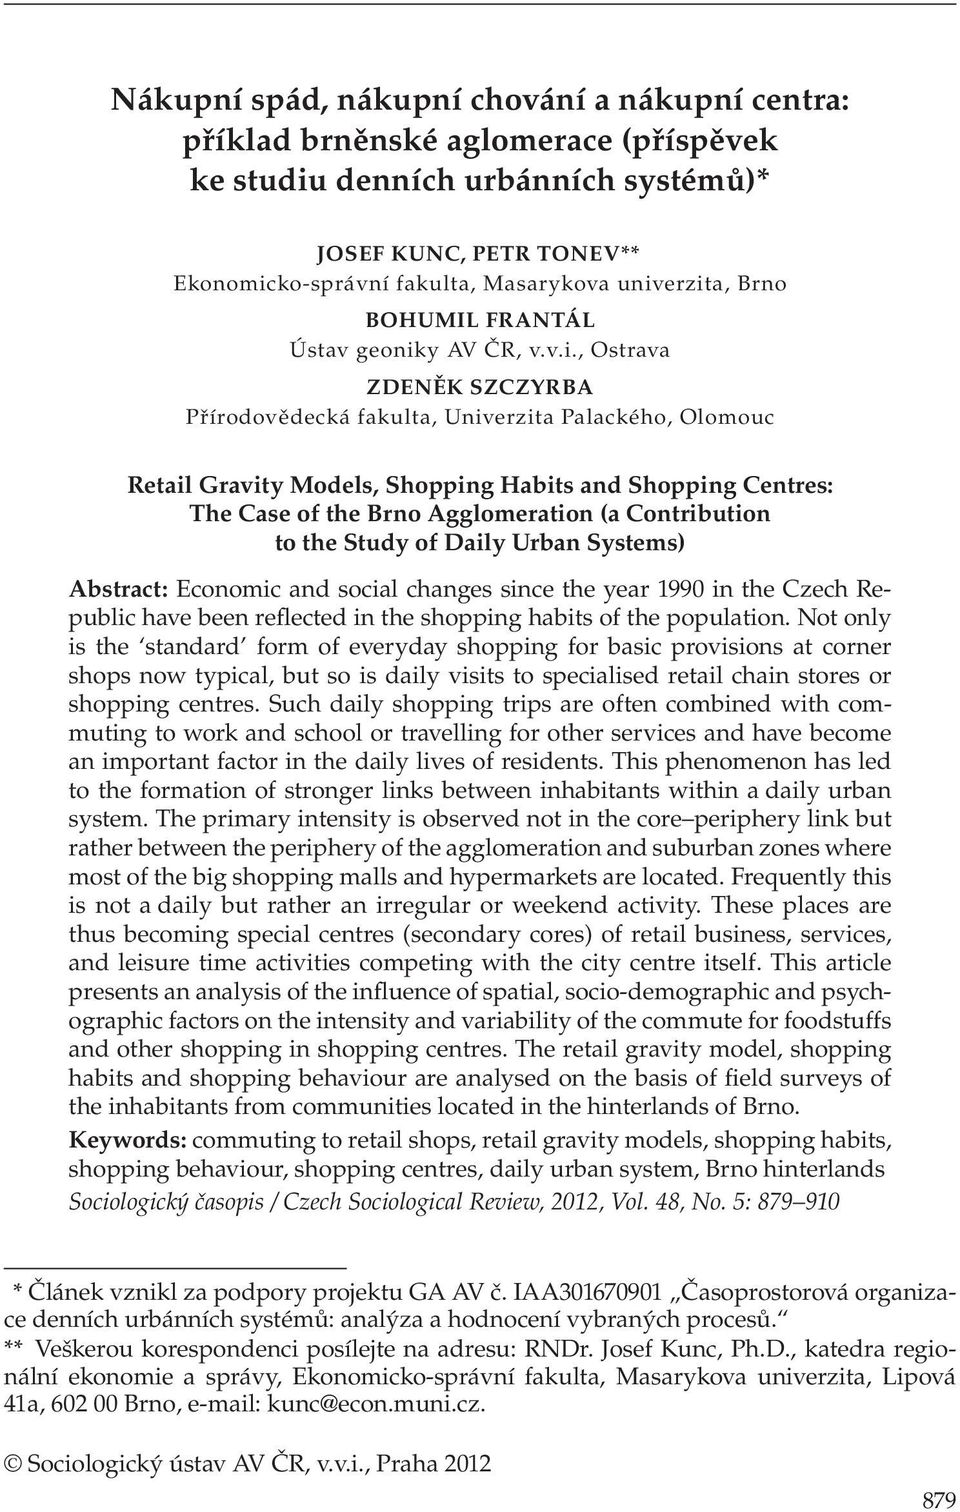 Centres: The Case of the Brno Agglomeration (a Contribution to the Study of Daily Urban Systems) Abstract: Economic and social changes since the year 1990 in the Czech Republic have been reflected in